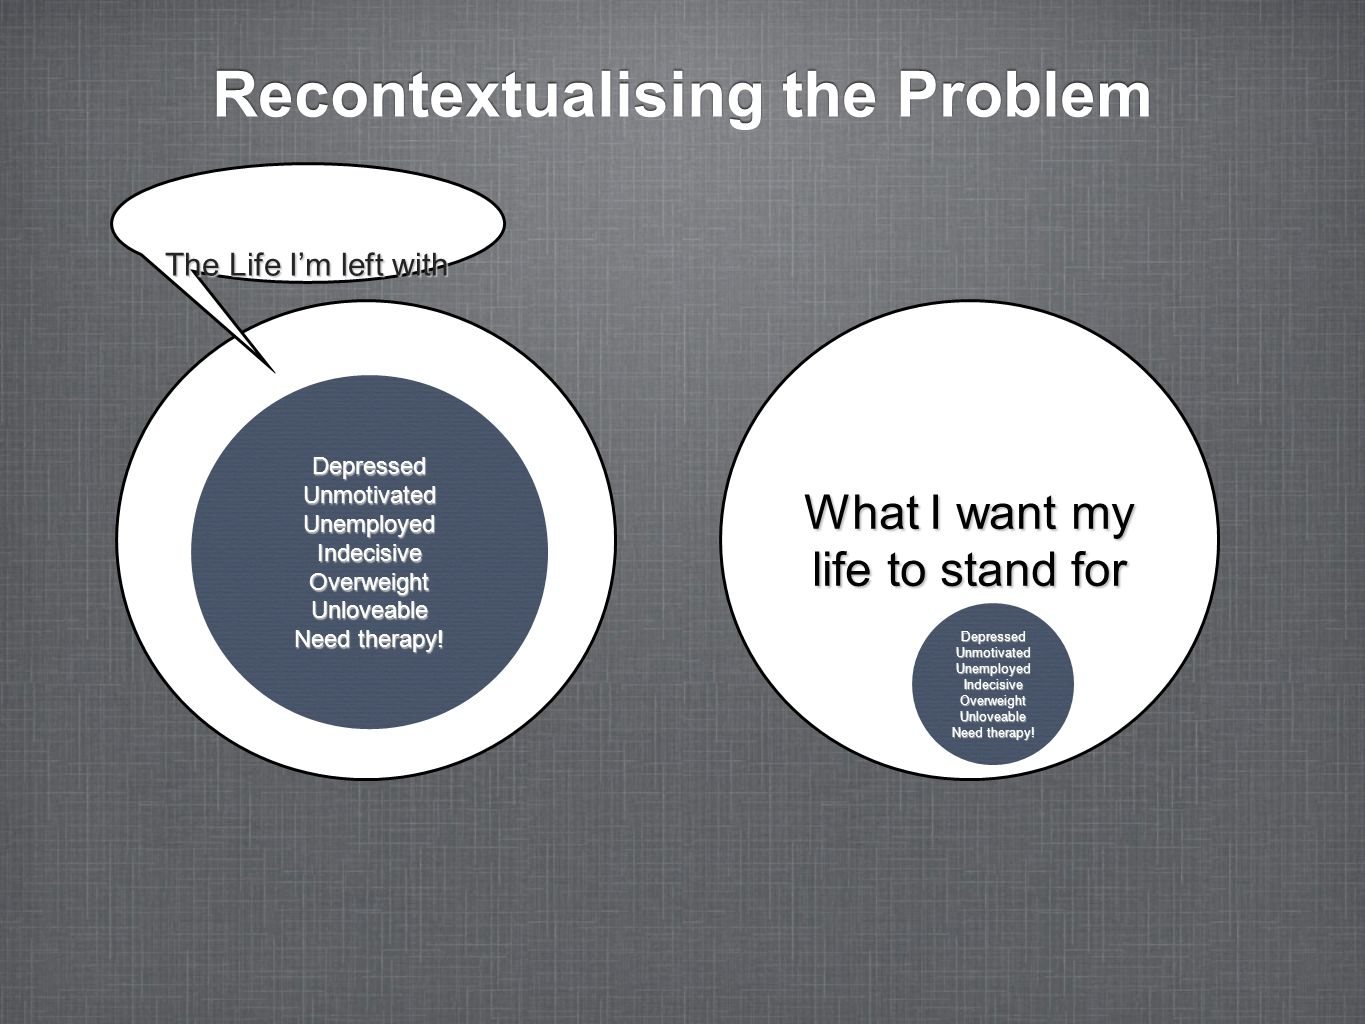 Recontextualising the Problem